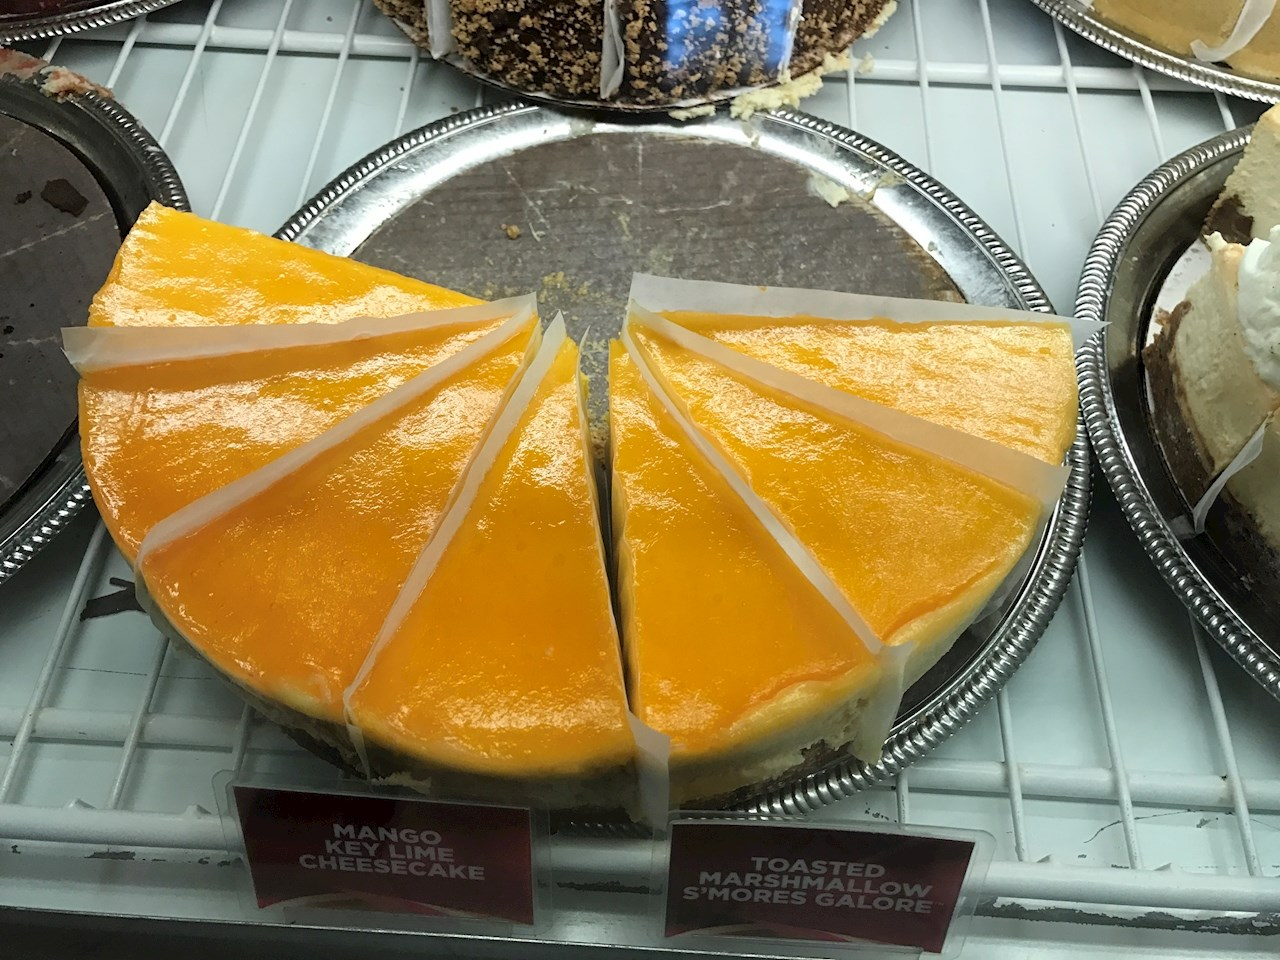 Key lime mango cheesecake at Cheescake Factory